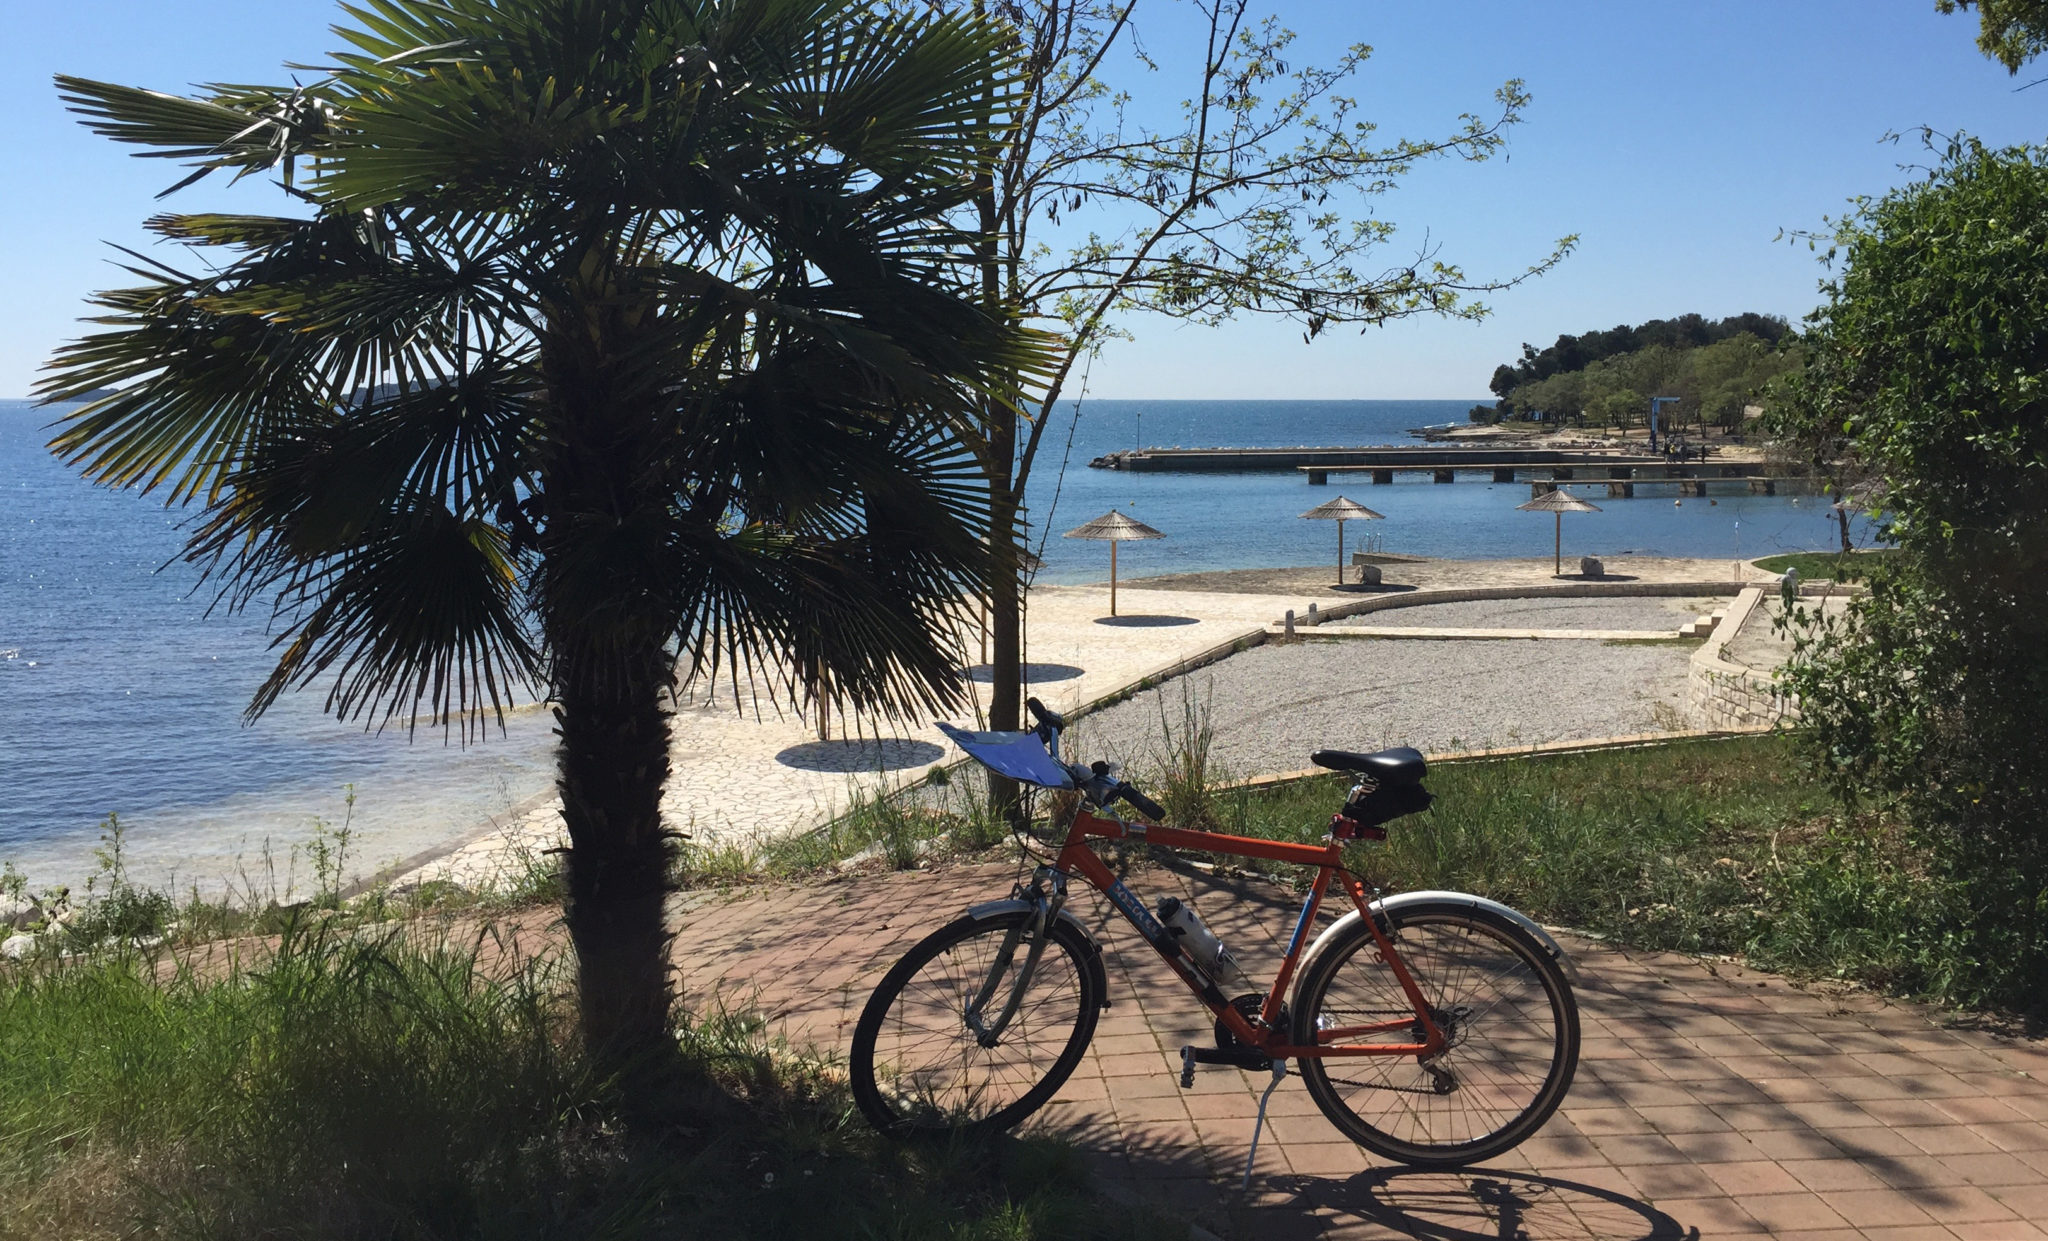 Istria cycling holiday: Cycle tour of Italy, Slovenia and Croatia